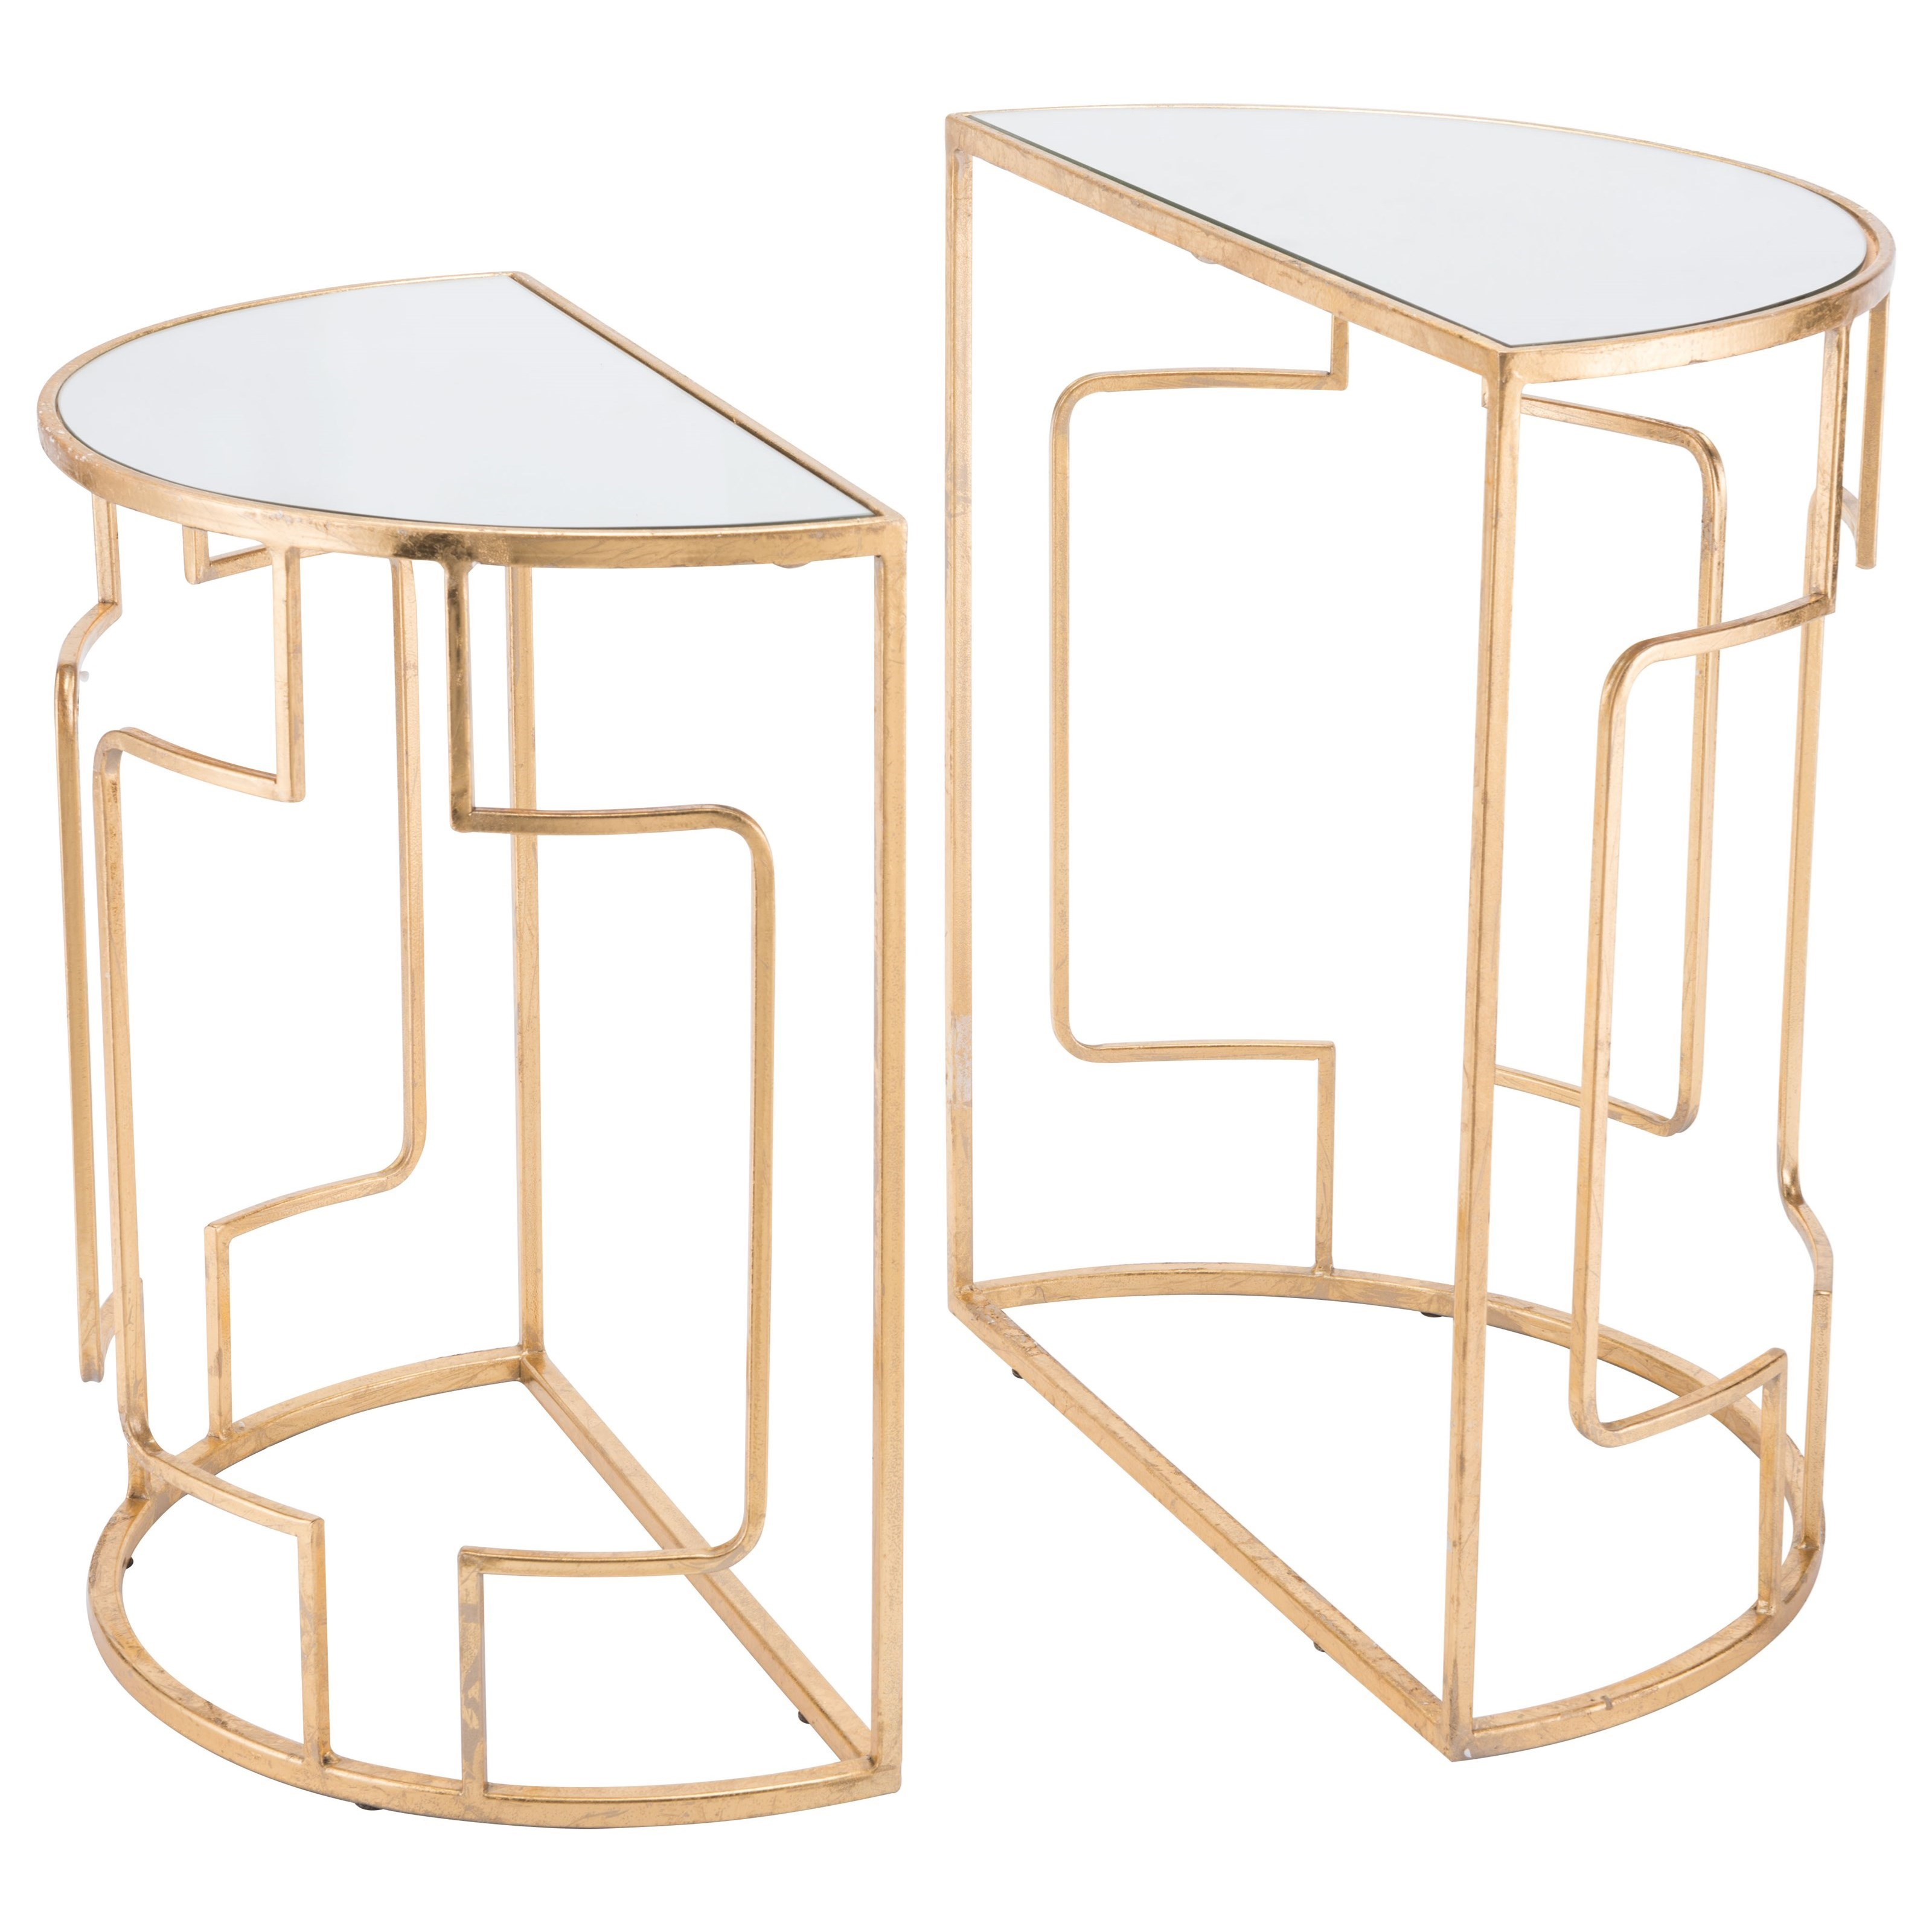 Accent Tables Roma Set of 2 Side Tables by Zuo at Nassau Furniture and Mattress